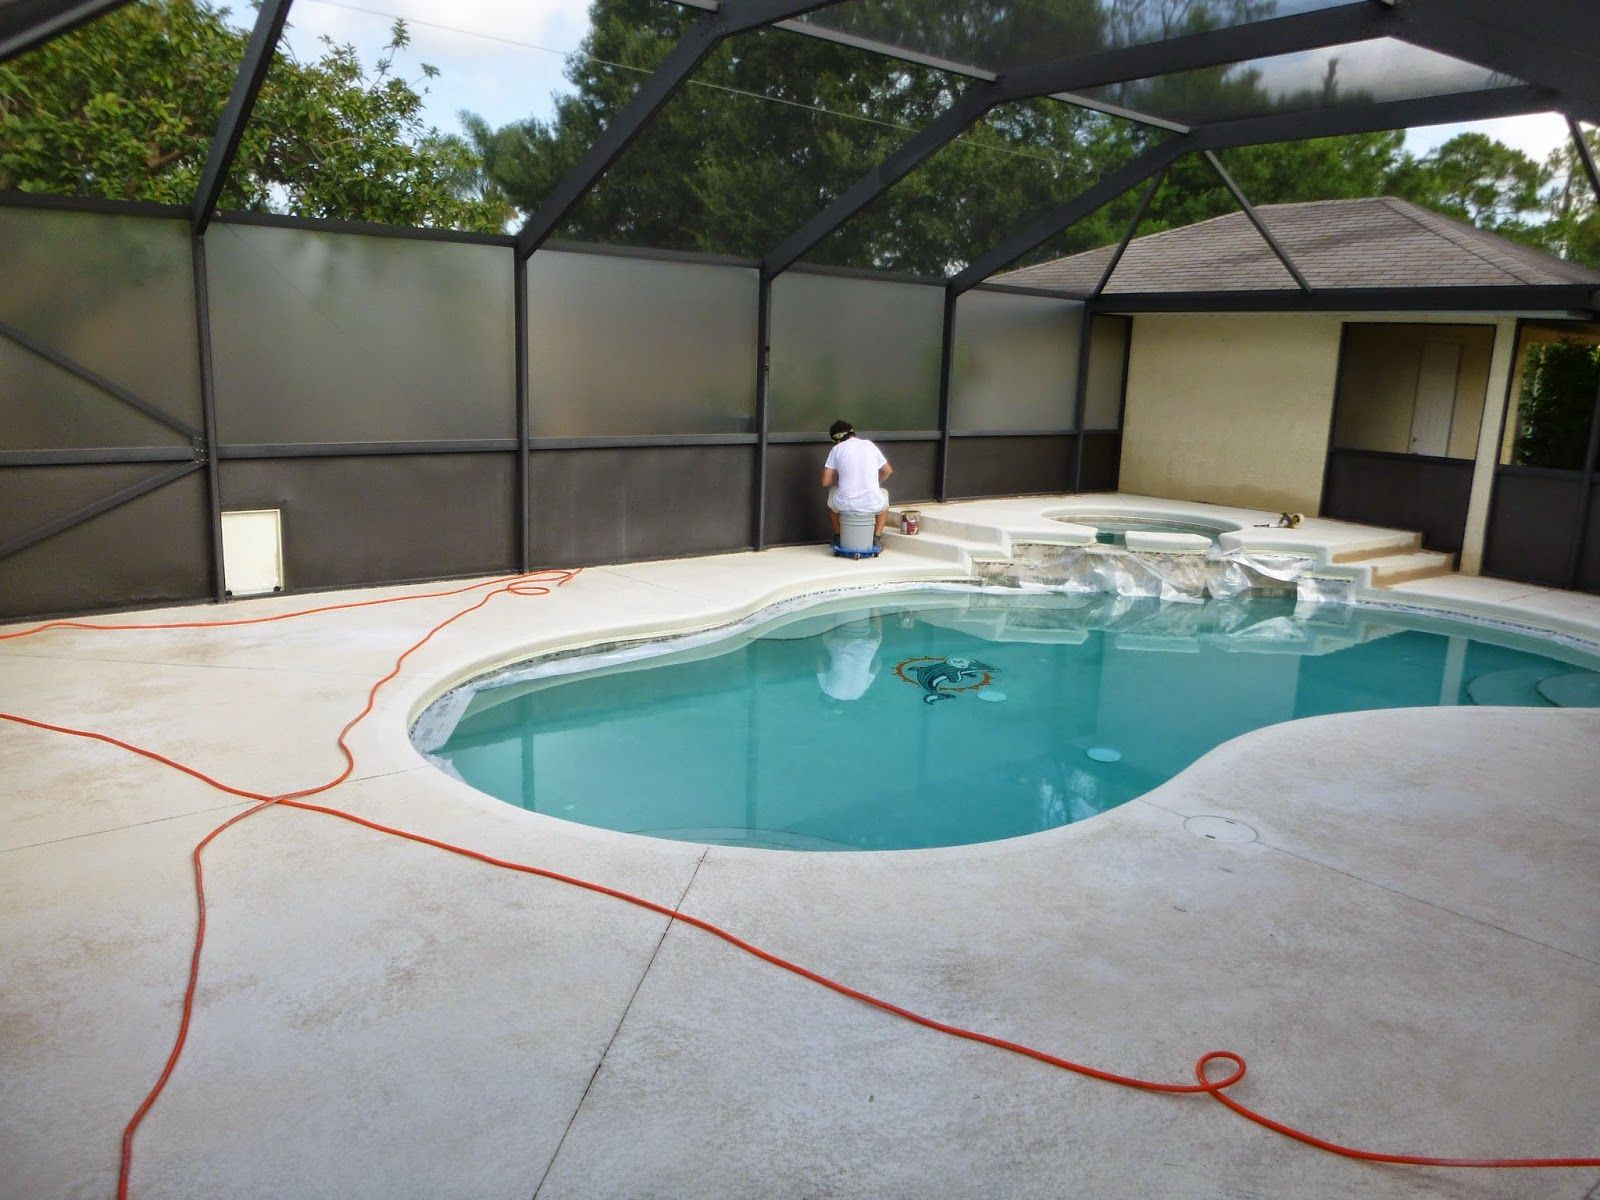 Painting Pool Patio Deck Using H C Solid Color Concrete Stain With Images Pool Patio Patio Deck Pool